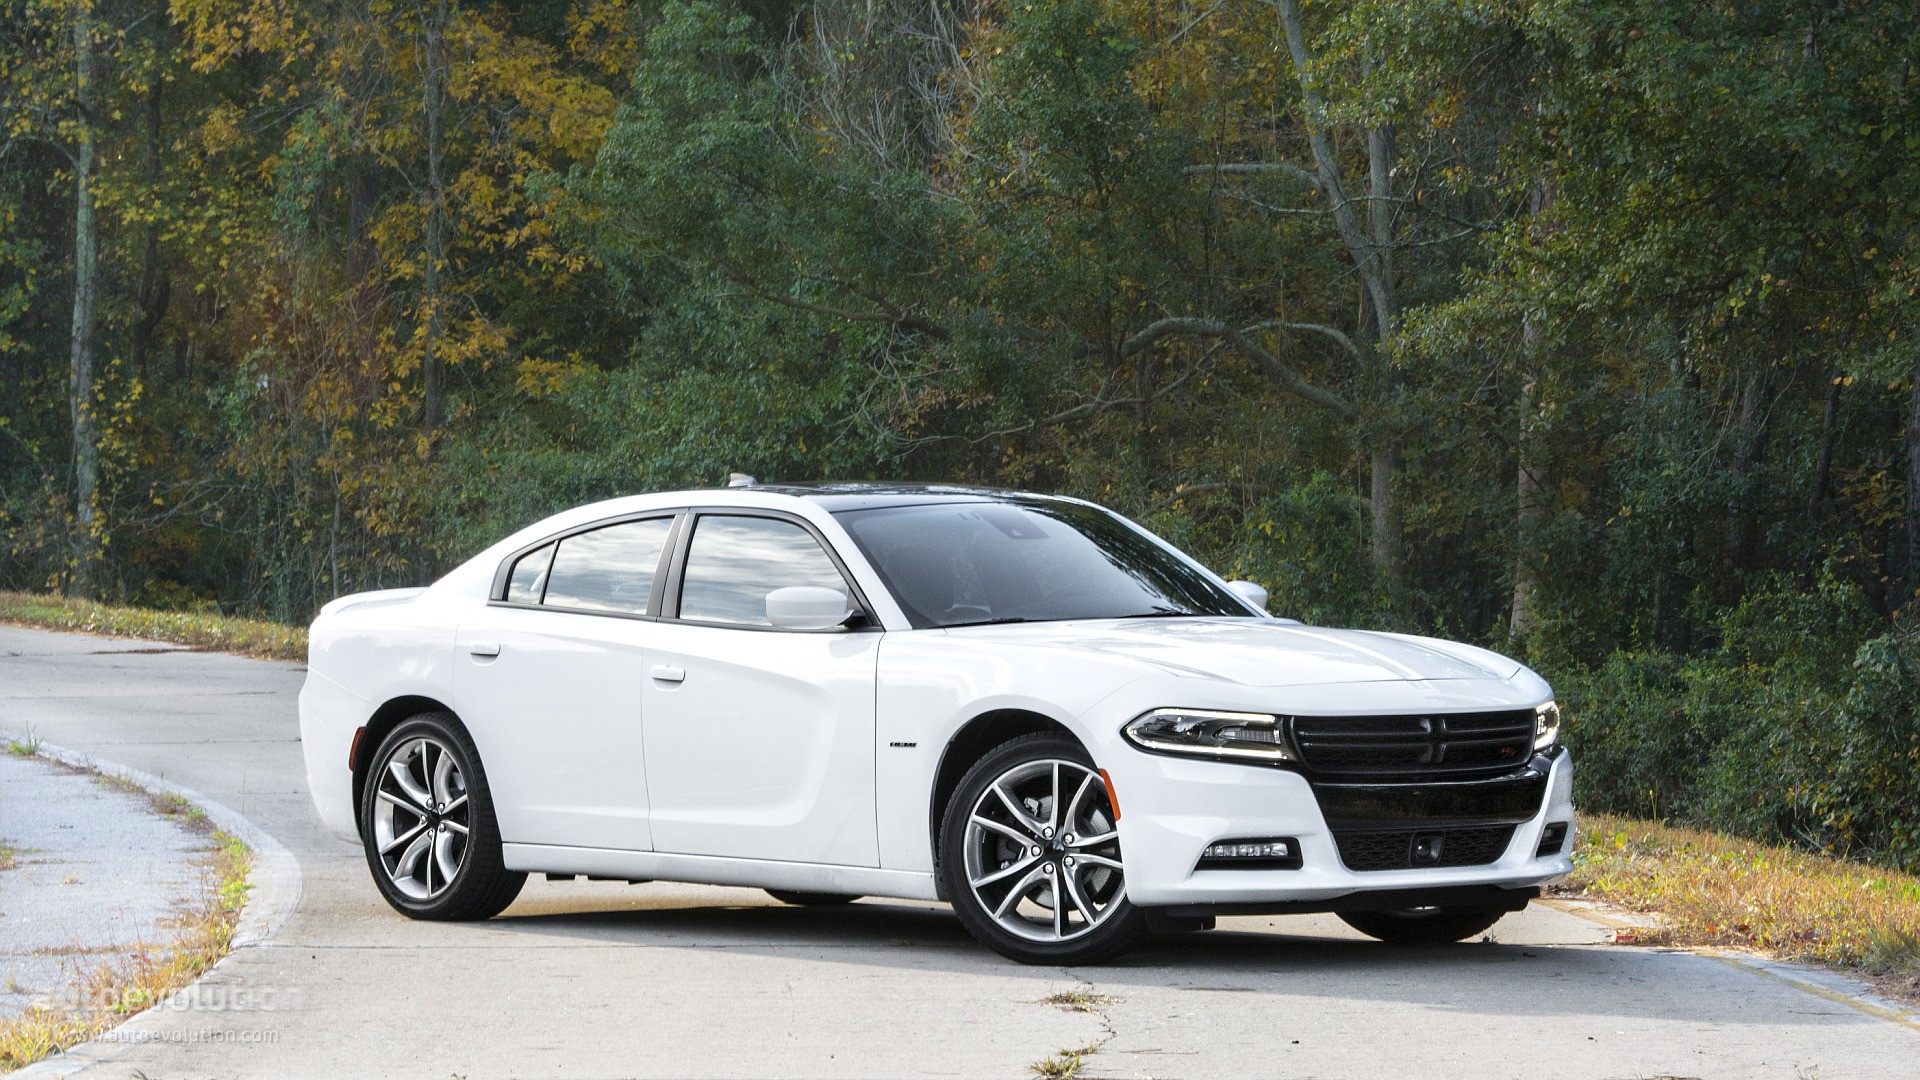 2015 dodge charger r/t review - autoevolution